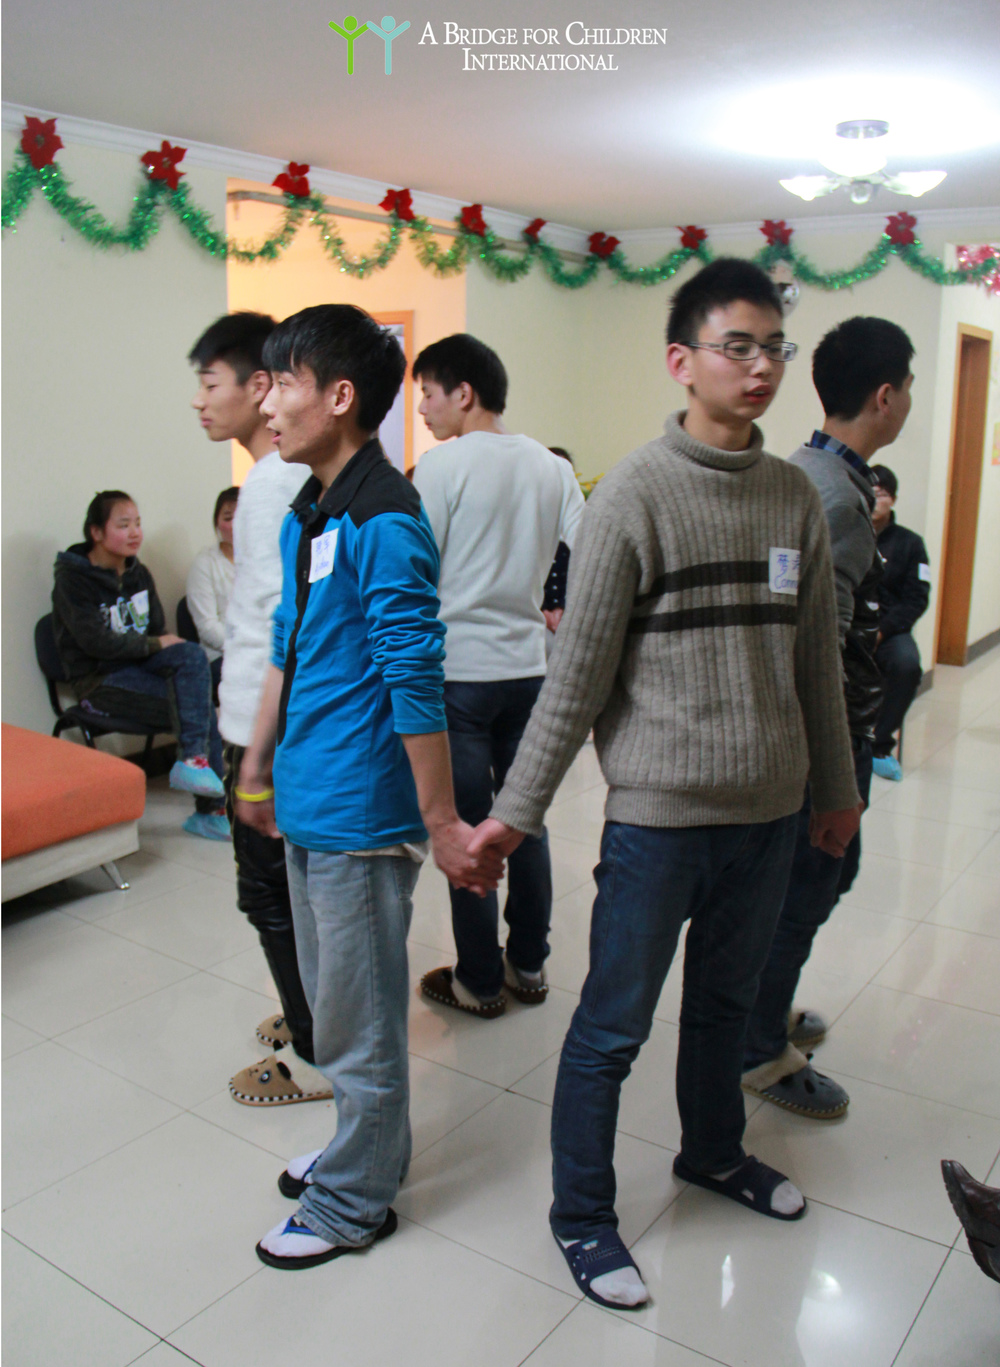 The boys' performance at the 2013 DREAM Christmas Party, celebrated alongside ABC staff and former DREAM students.